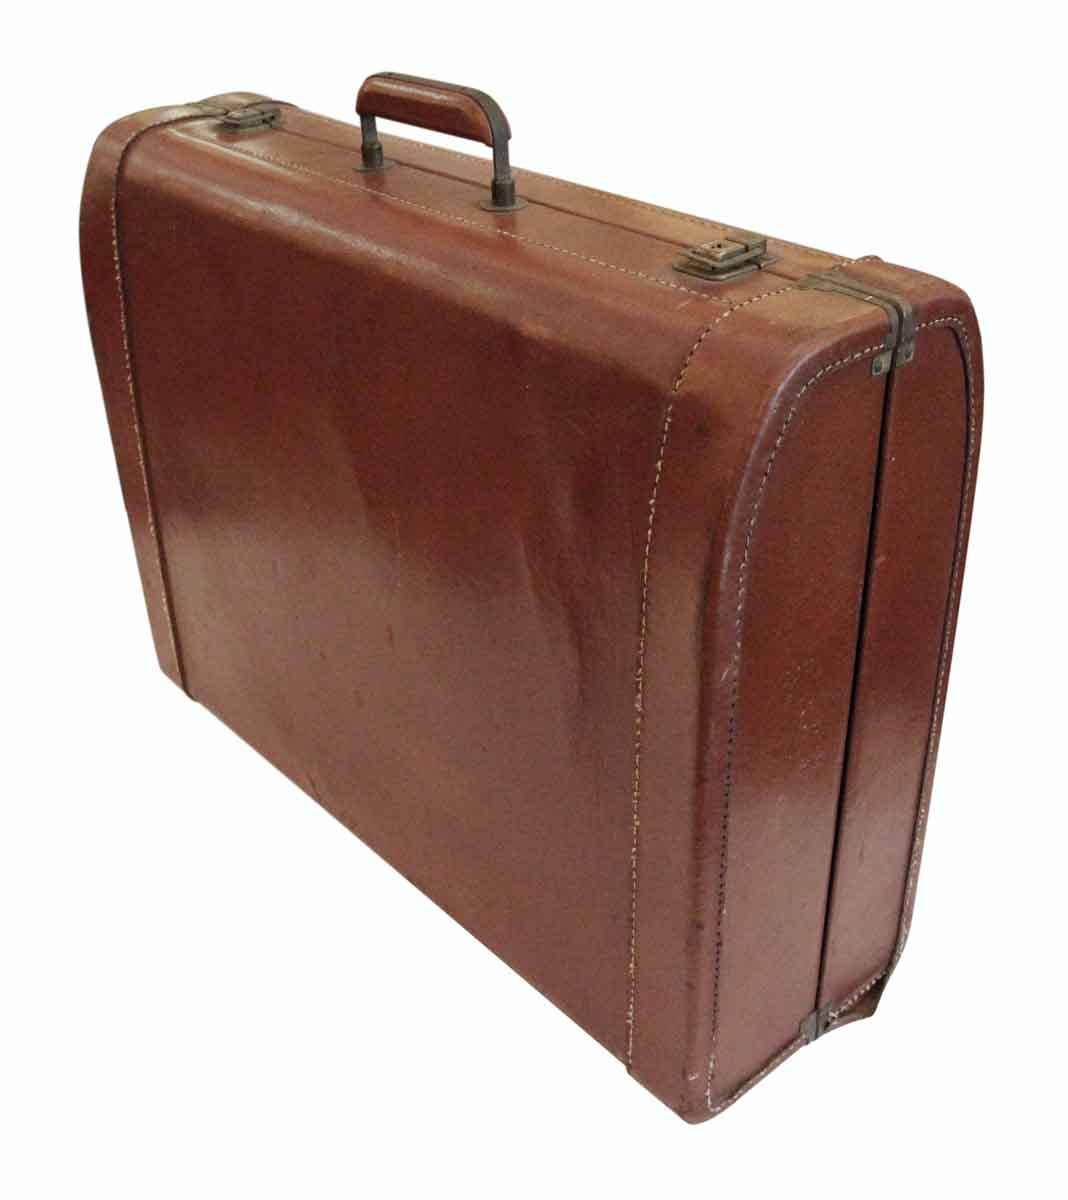 Vintage Leather Suitcase With Stitching Olde Good Things